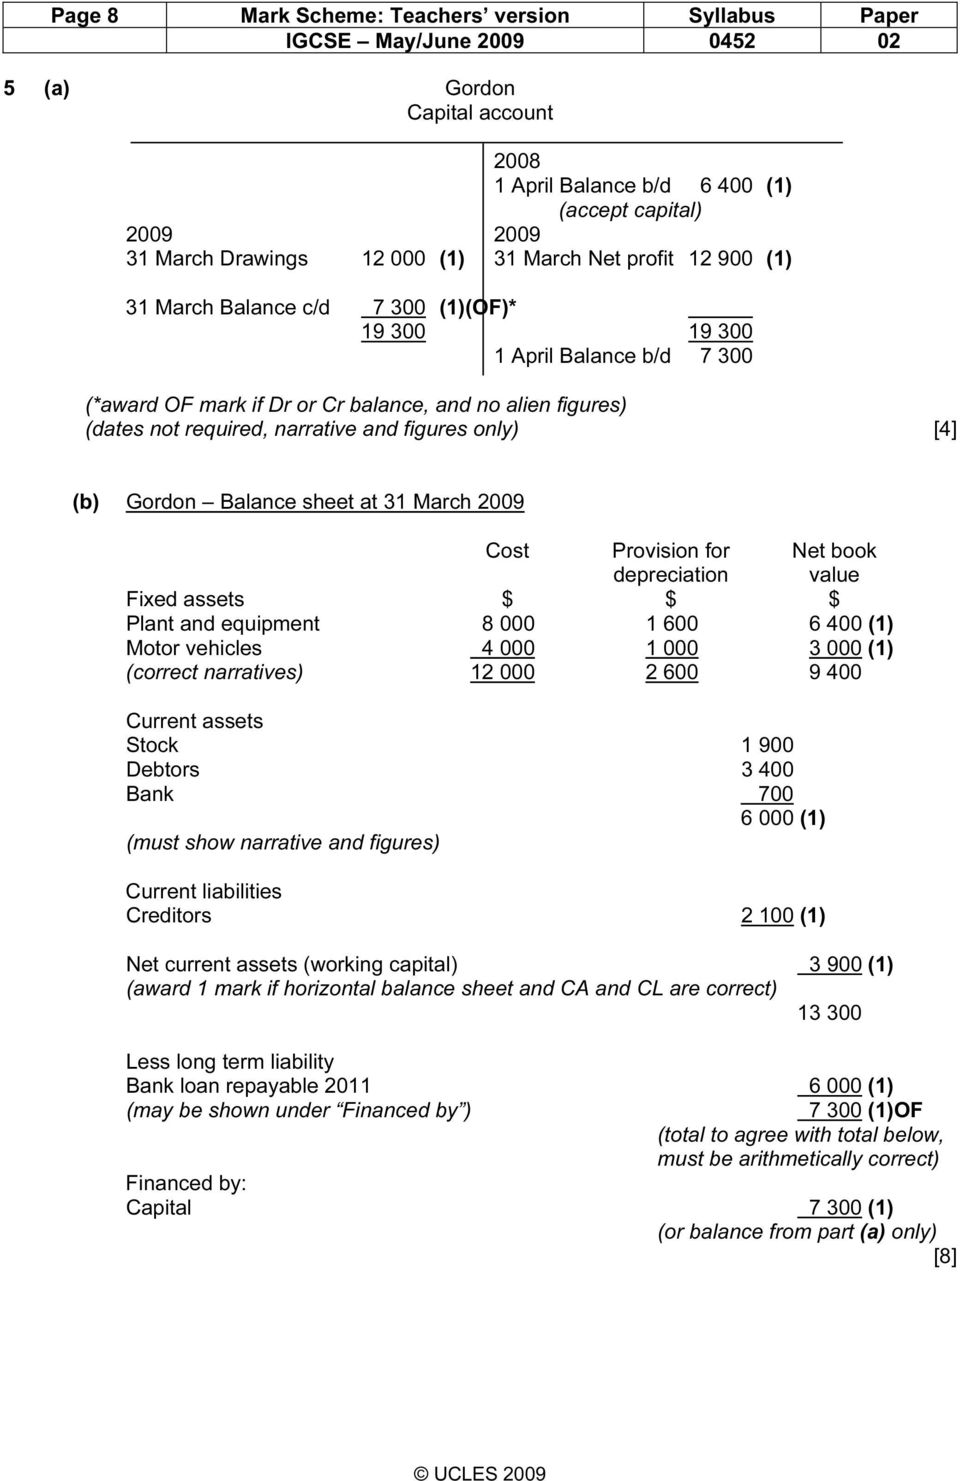 sheet at 31 March 2009 Cost Provision for Net book depreciation value Fixed assets Plant and equipment 8 000 1 600 6 400 (1) Motor vehicles 4 000 1 000 3 000 (1) (correct narratives) 12 000 2 600 9